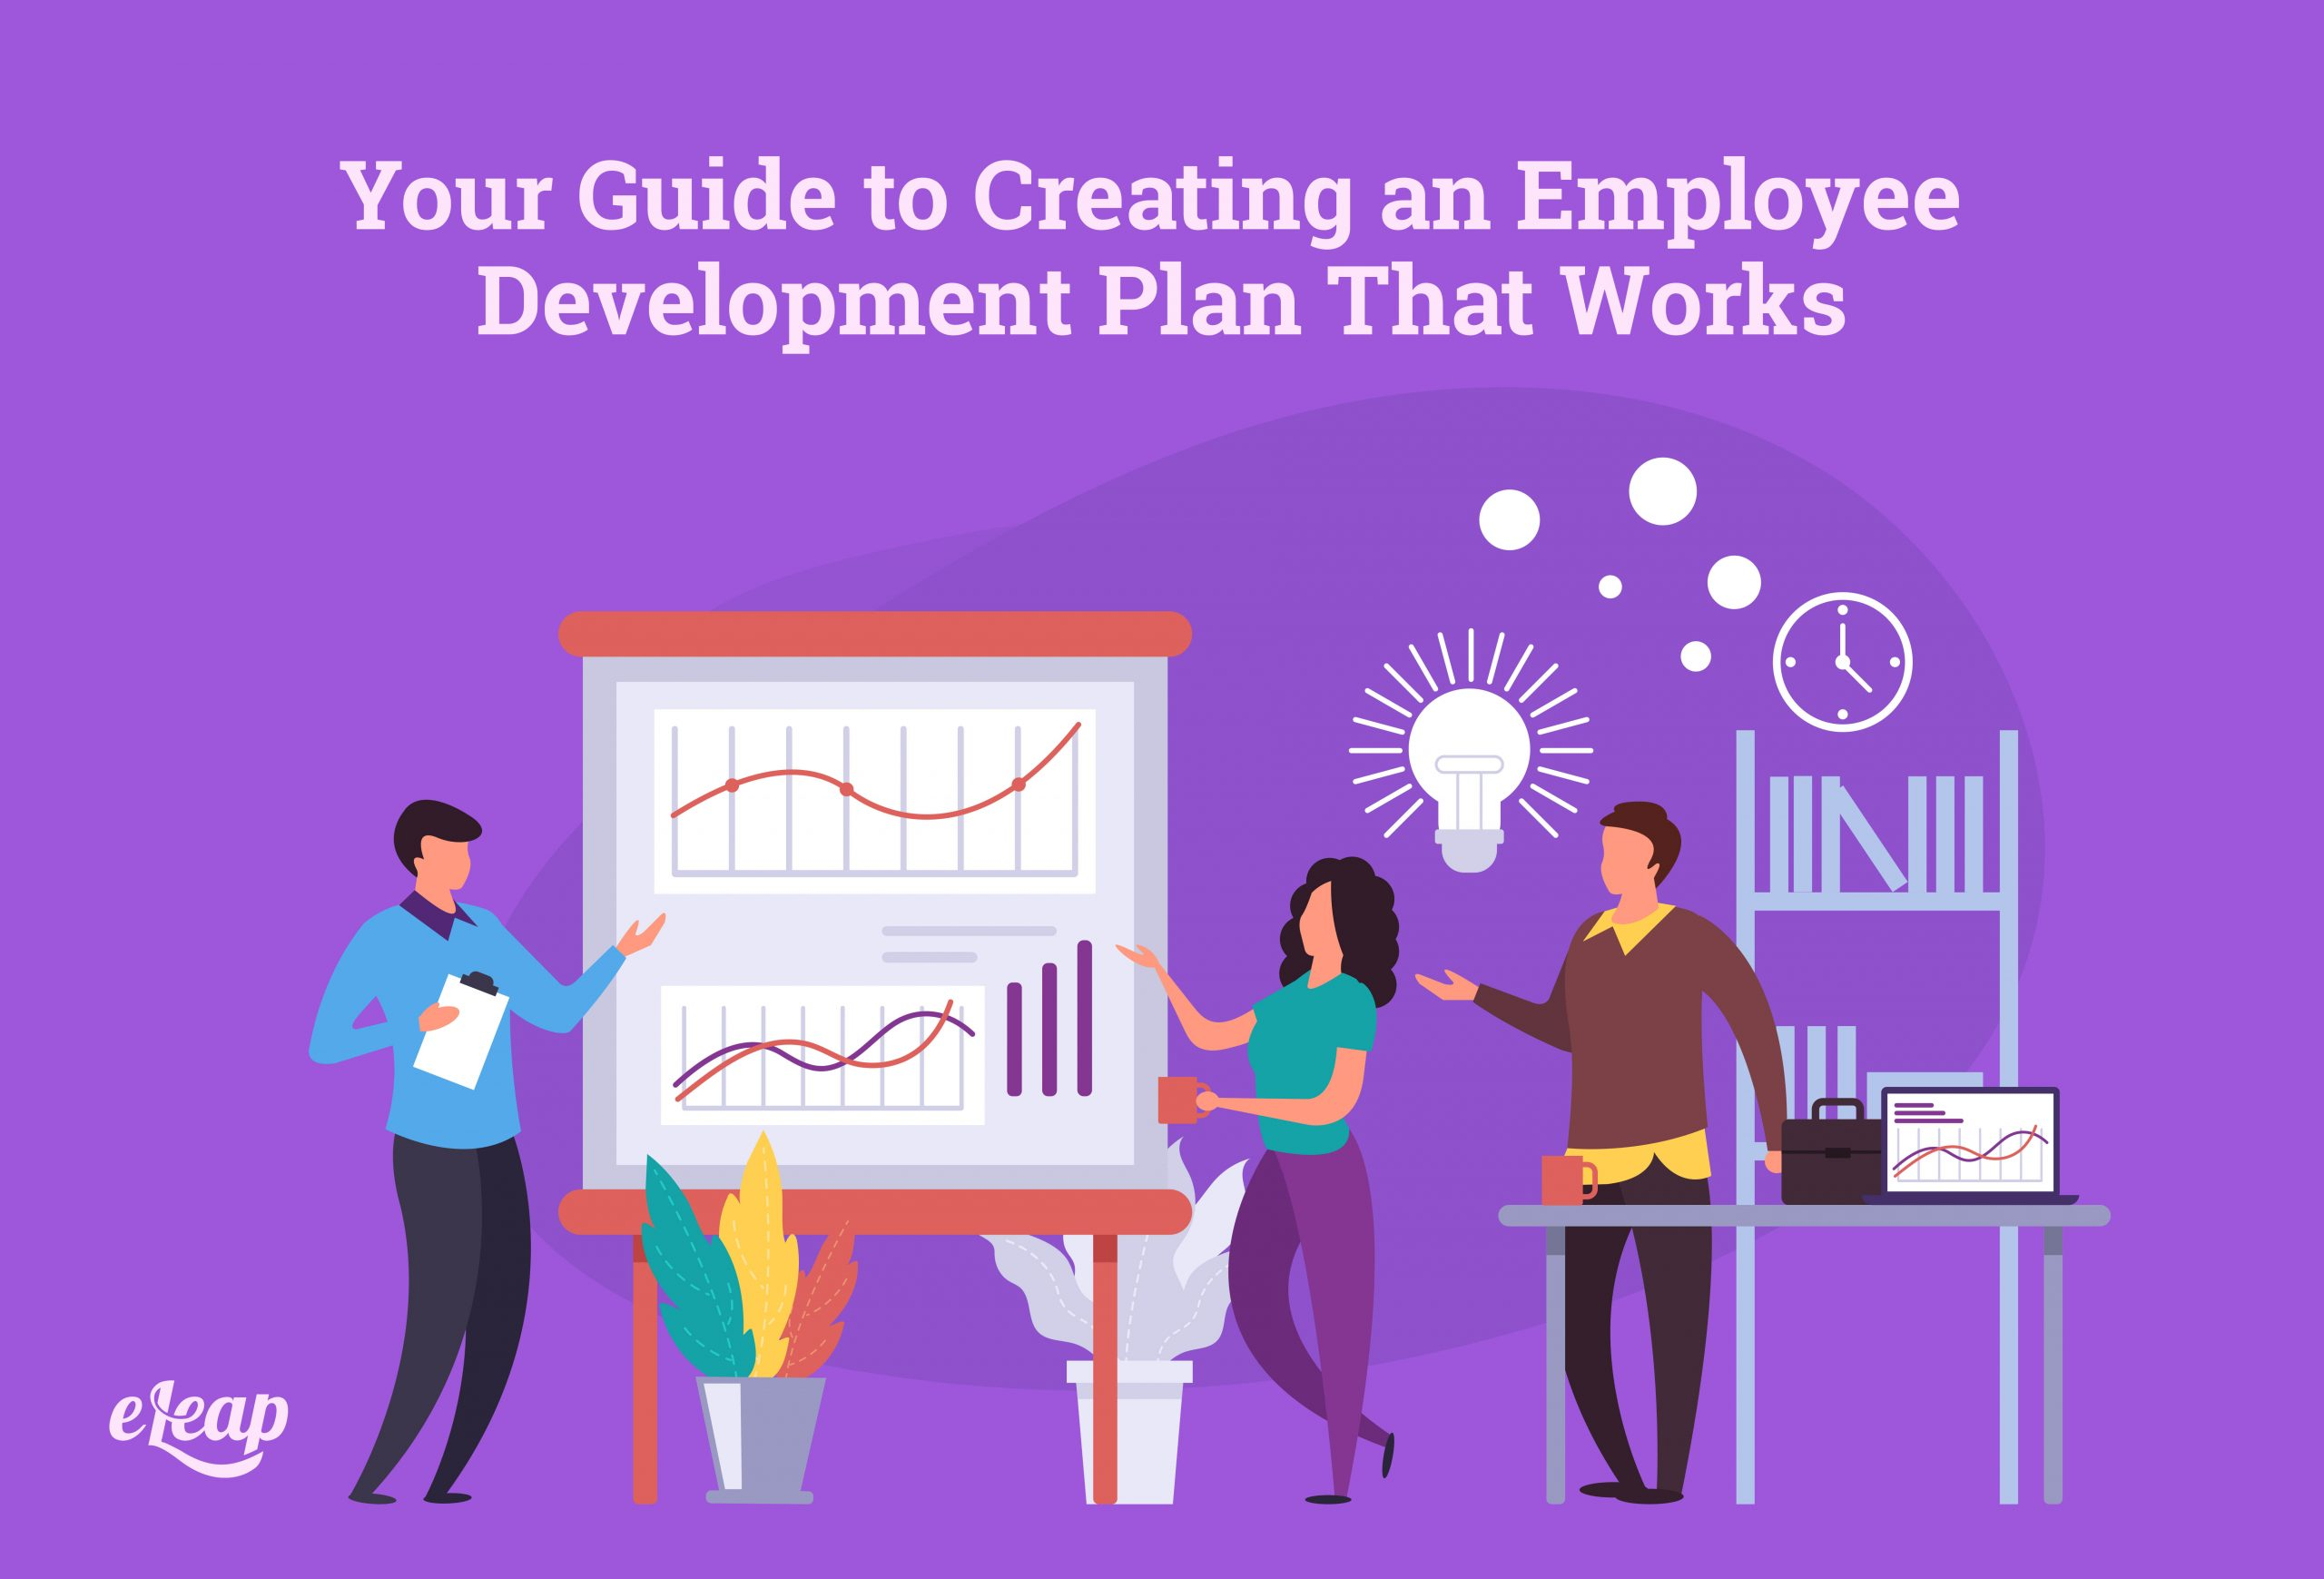 Your Guide to Creating an Employee Development Plan That Works